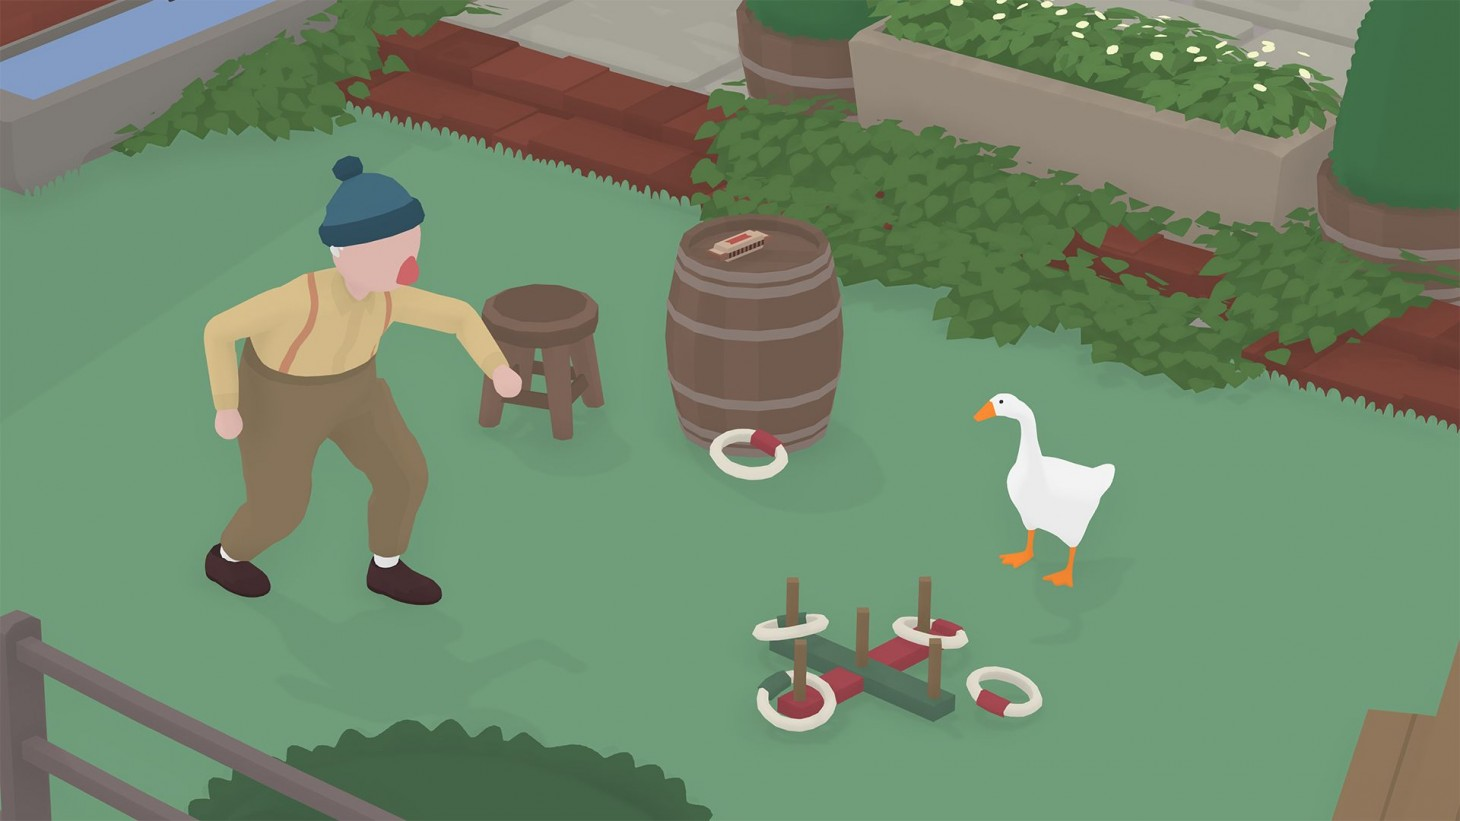 Untitled Goose Game Coming To Ps4 Next Week Game Informer